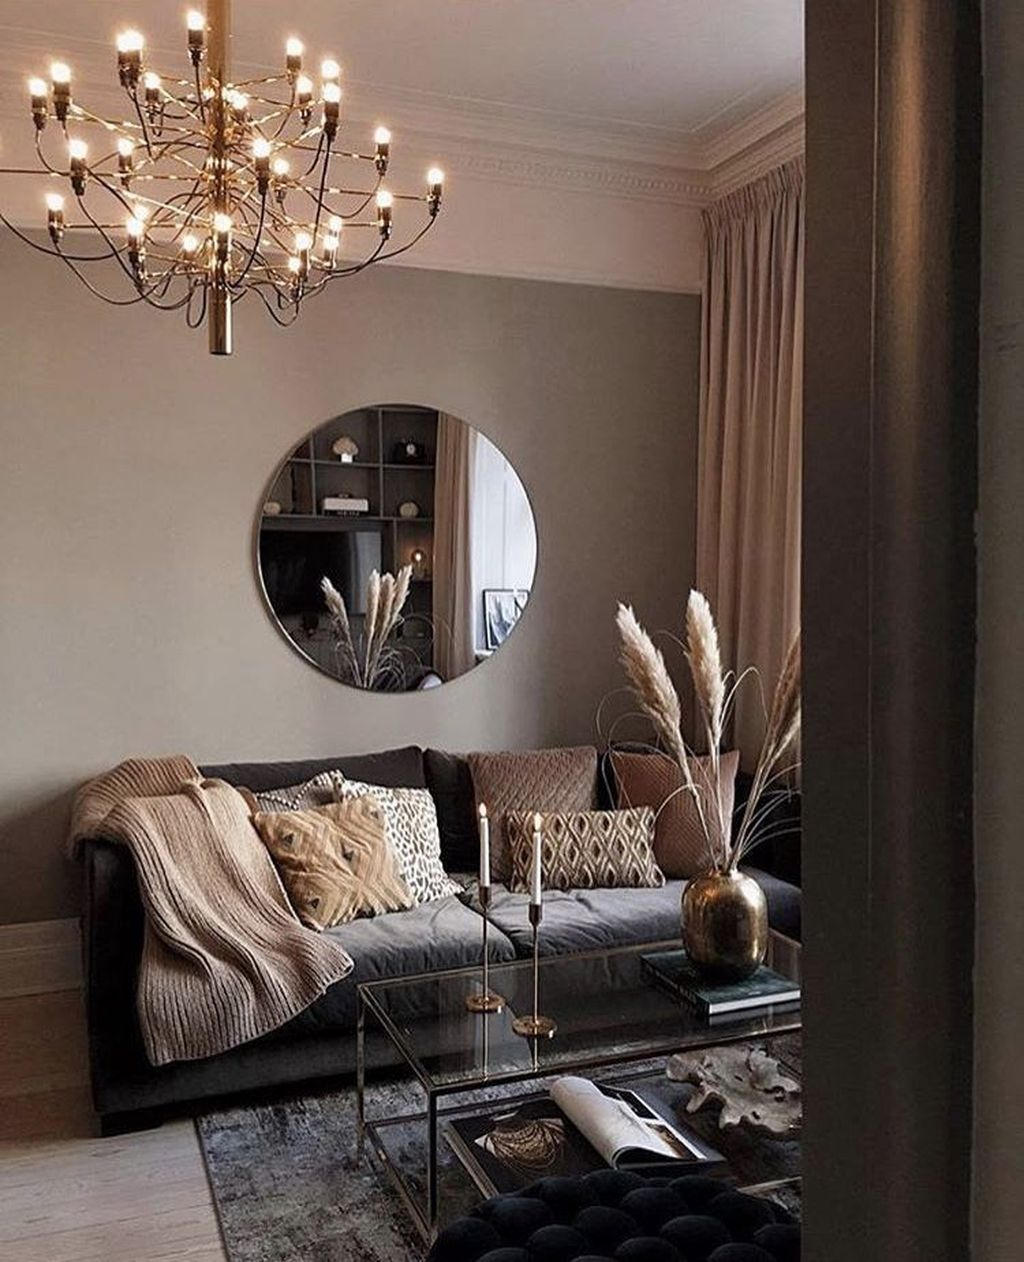 Cool Living Room Design Ideas To Make Look Confortable For Guest 06